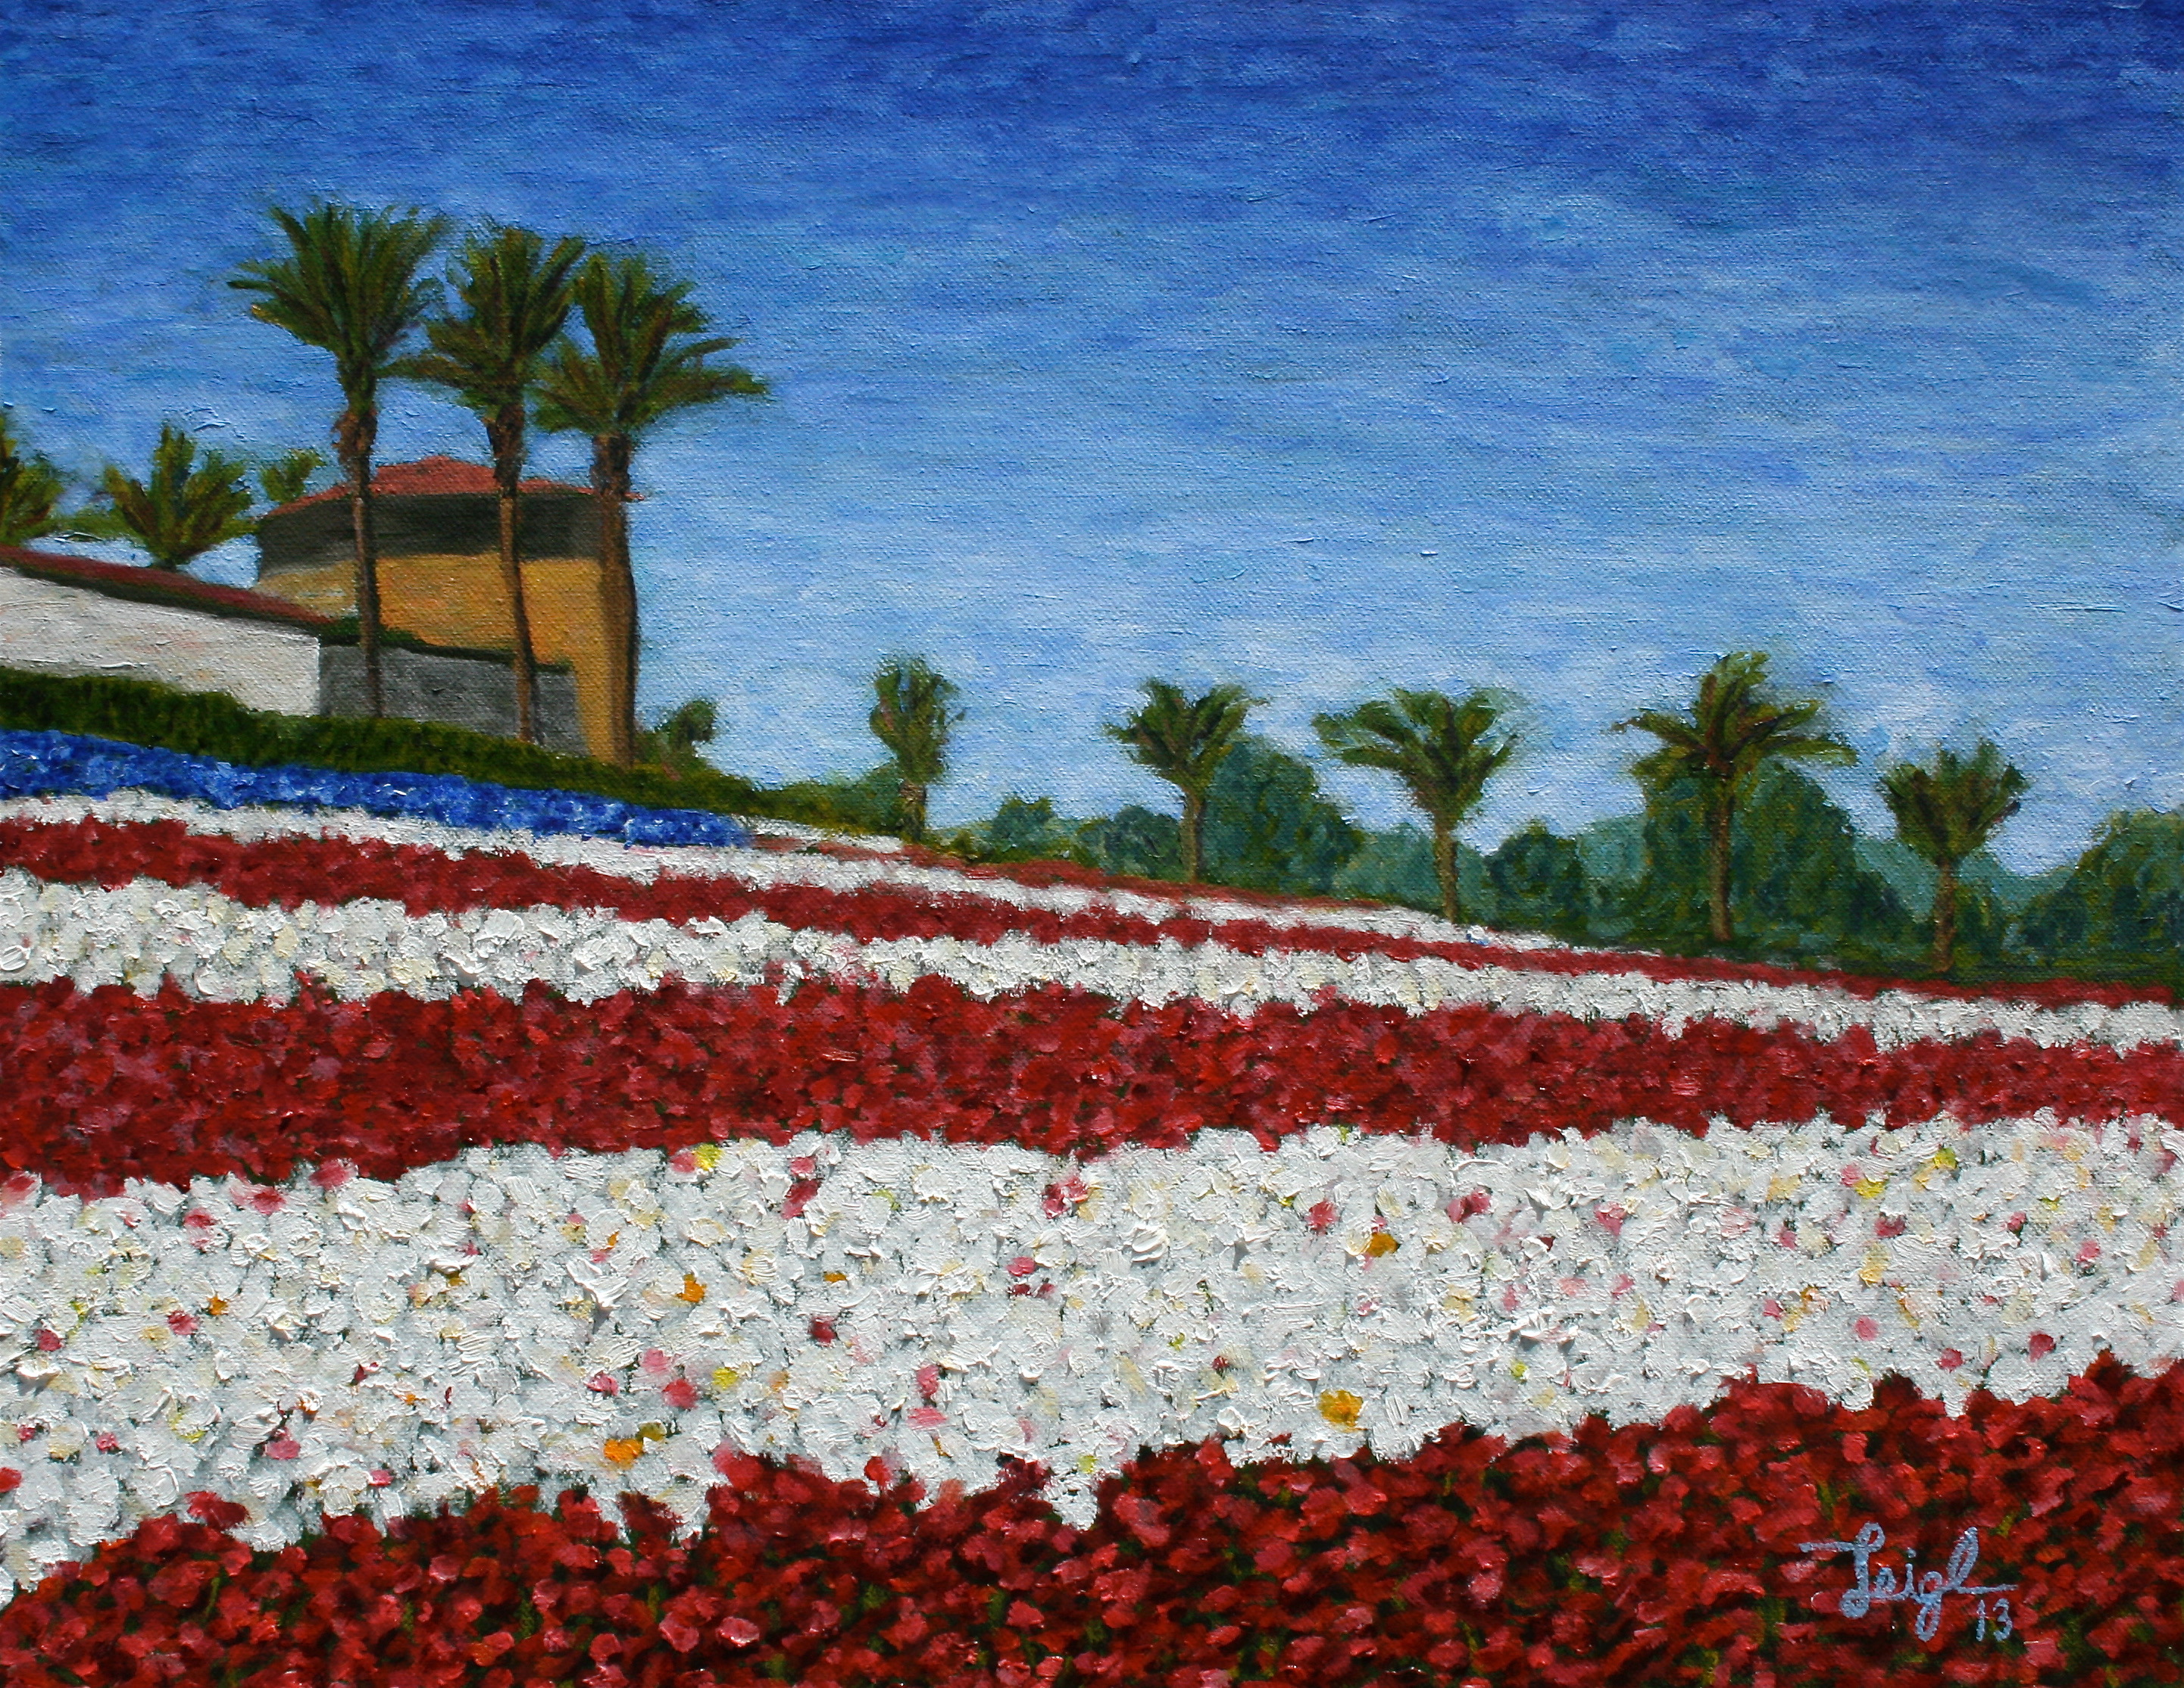 Carlsbad Flower Fields #3 (Old Glory)  ~   Mark Simmers, Oceanside, CA  2013  •  20 x 16